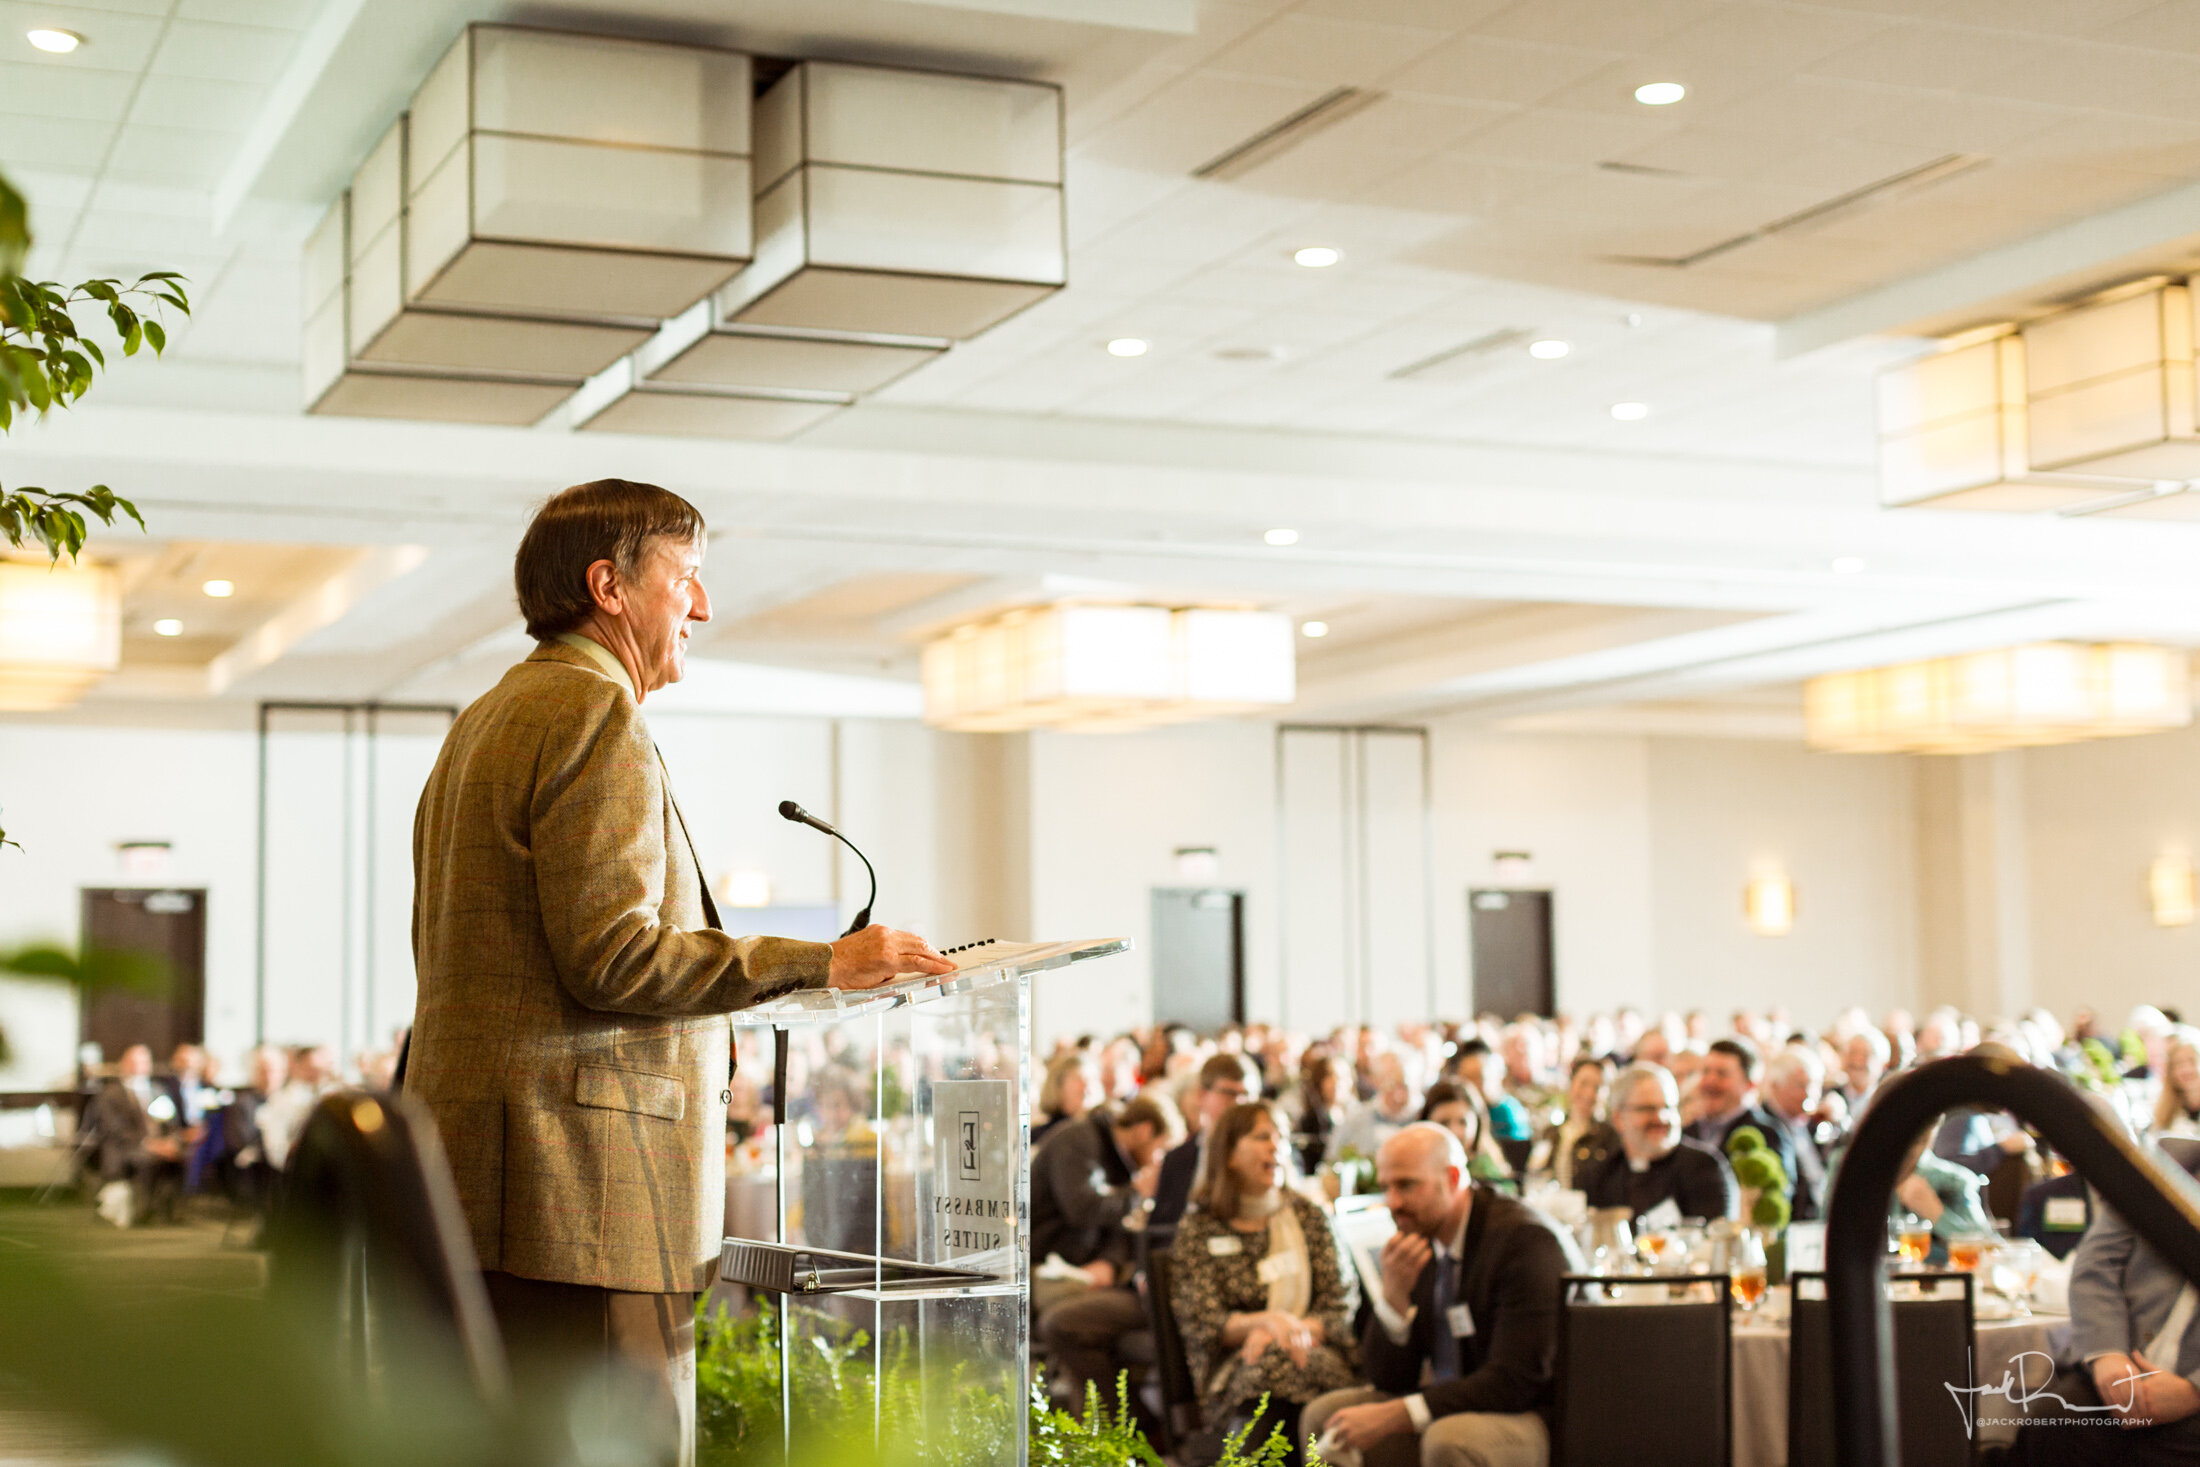 Brad Wyche  Event Photography - Upstate Forever - Forever Green Luncheon - Embassy Suites, Greenville, South Carolina - Jack Robert Photography